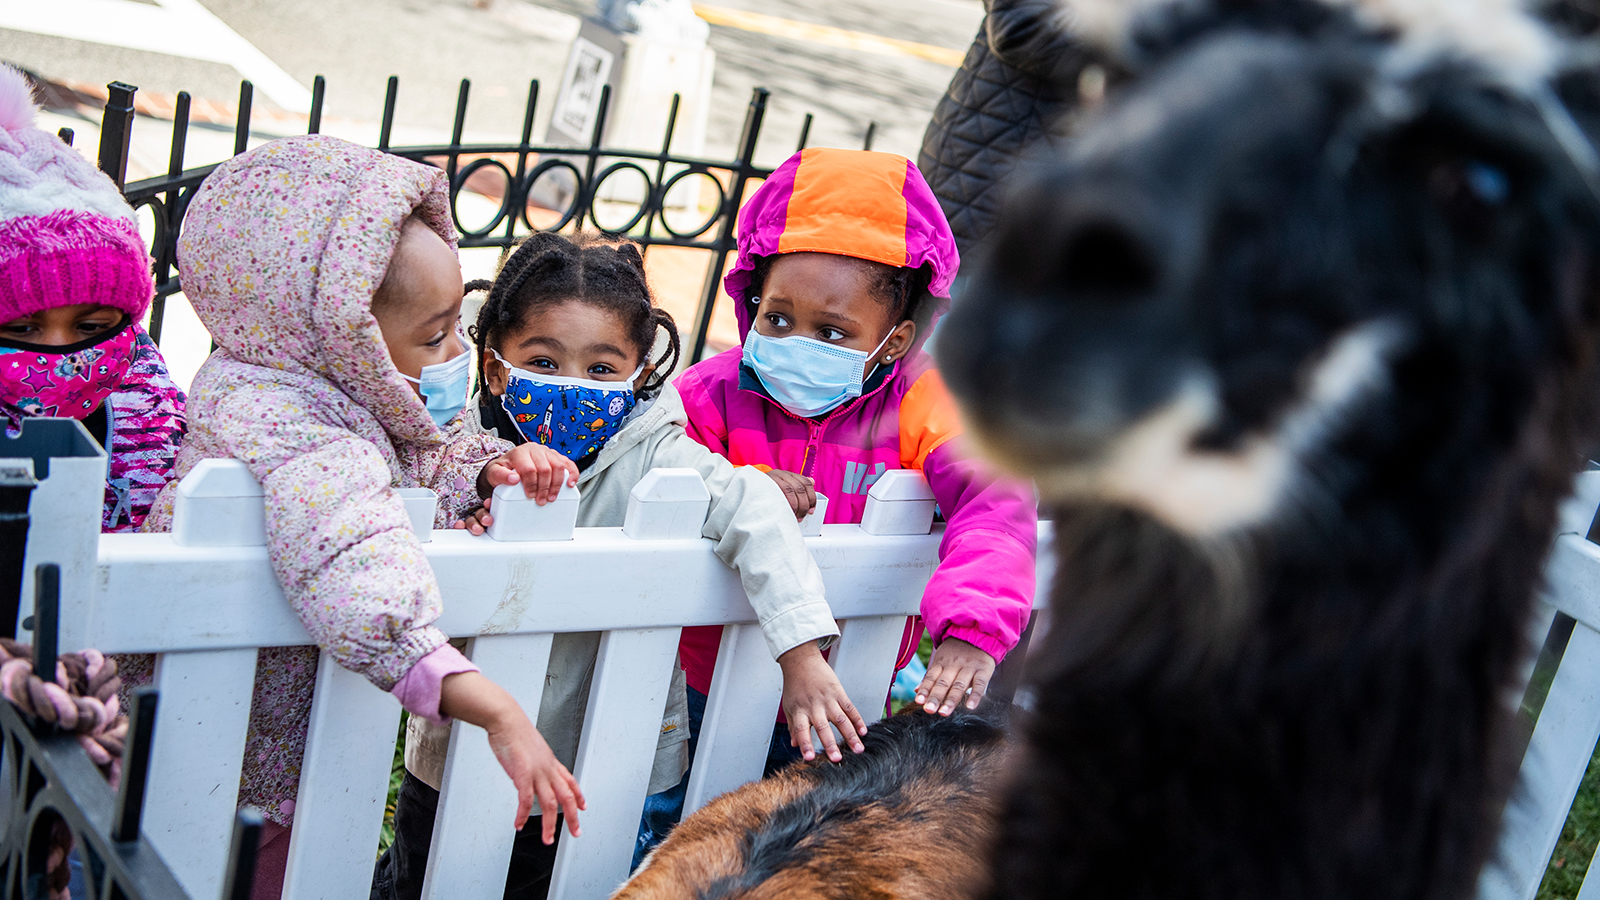 Students from Kingdom Kids Child Development Center pet animals during a birthday party at Springfield Baptist Church in the Shaw neighborhood of Washington, D.C., on April 2.